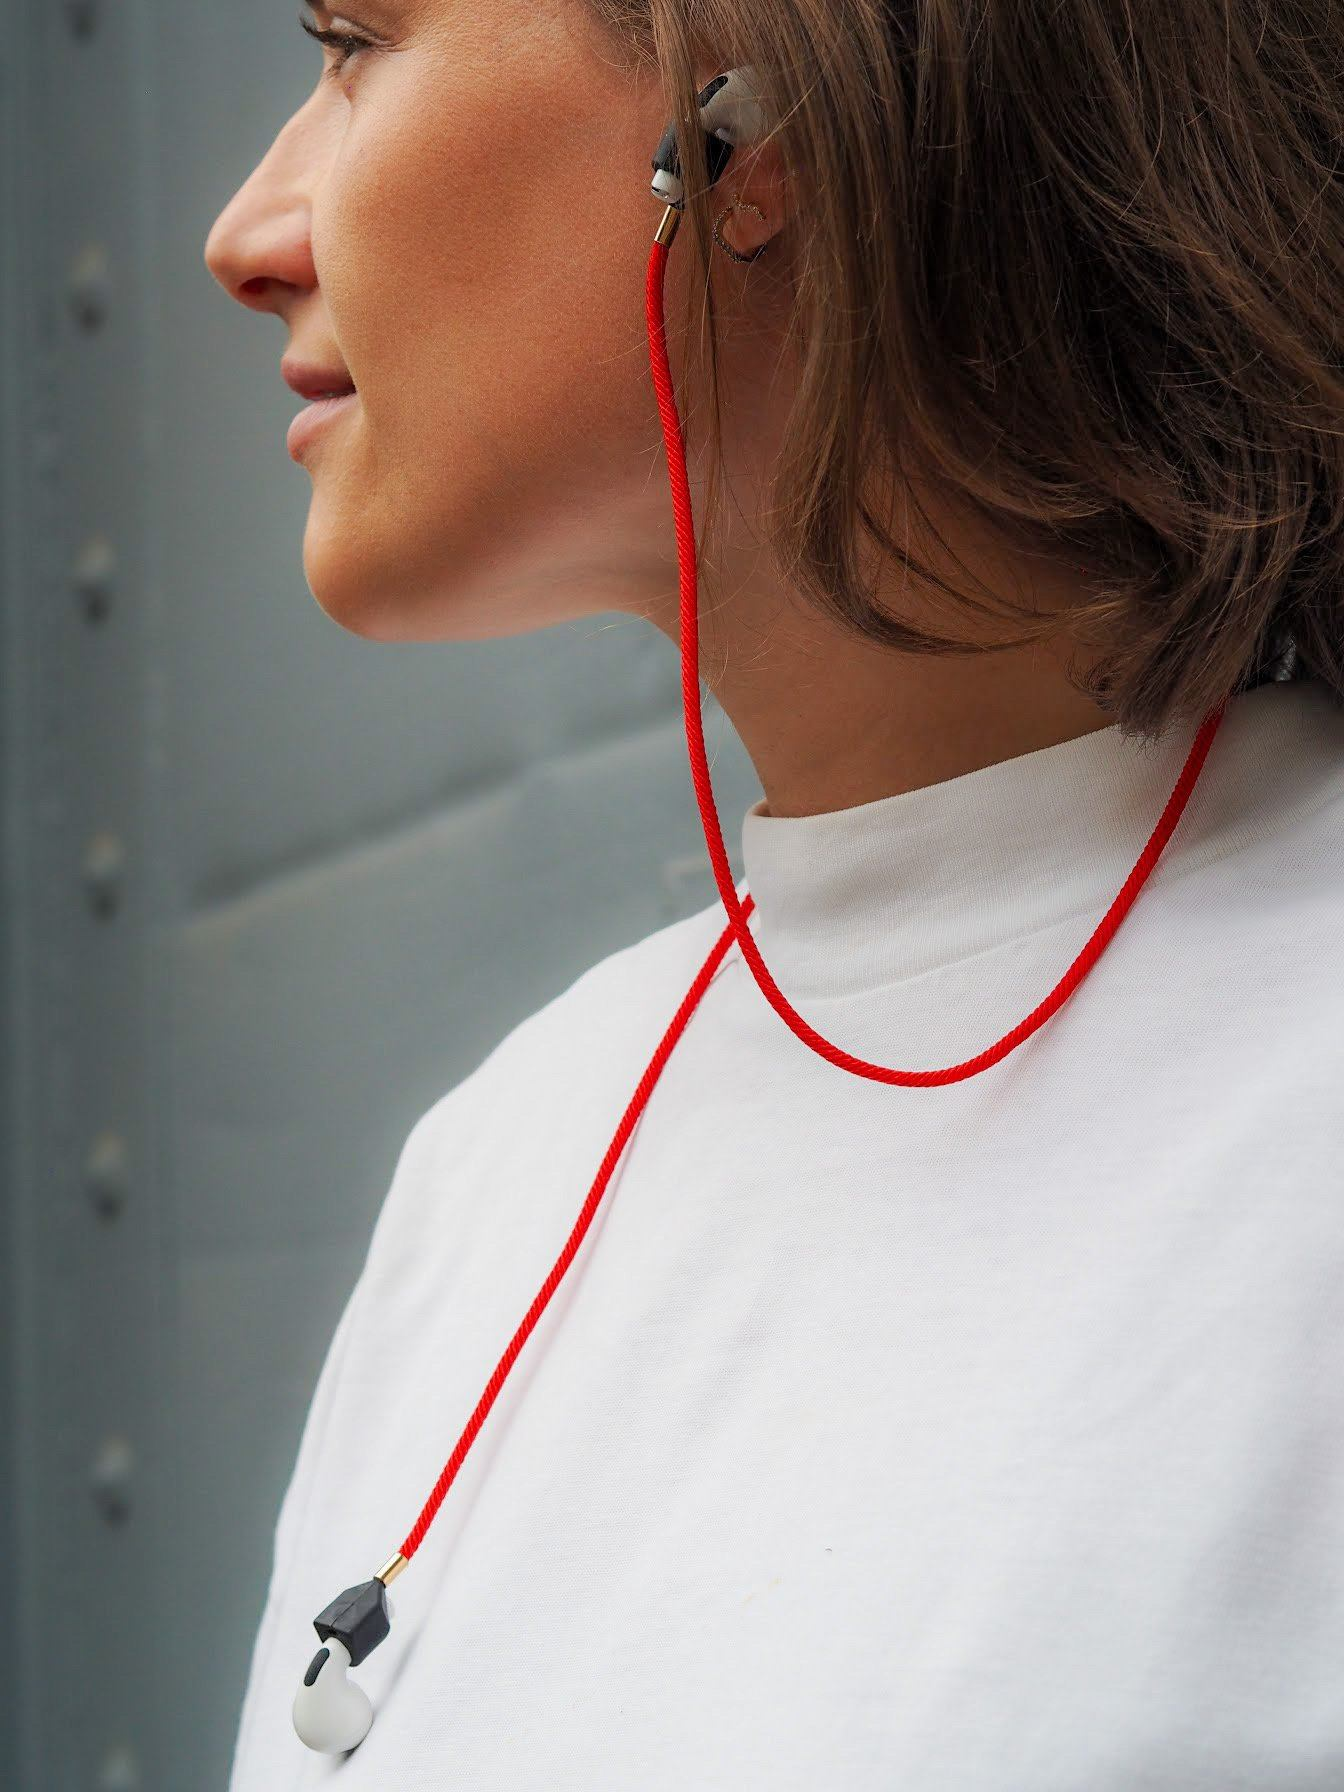 e:slings - Straps für AirPod und Airpod Pro AirPod Straps Keest Berlin red